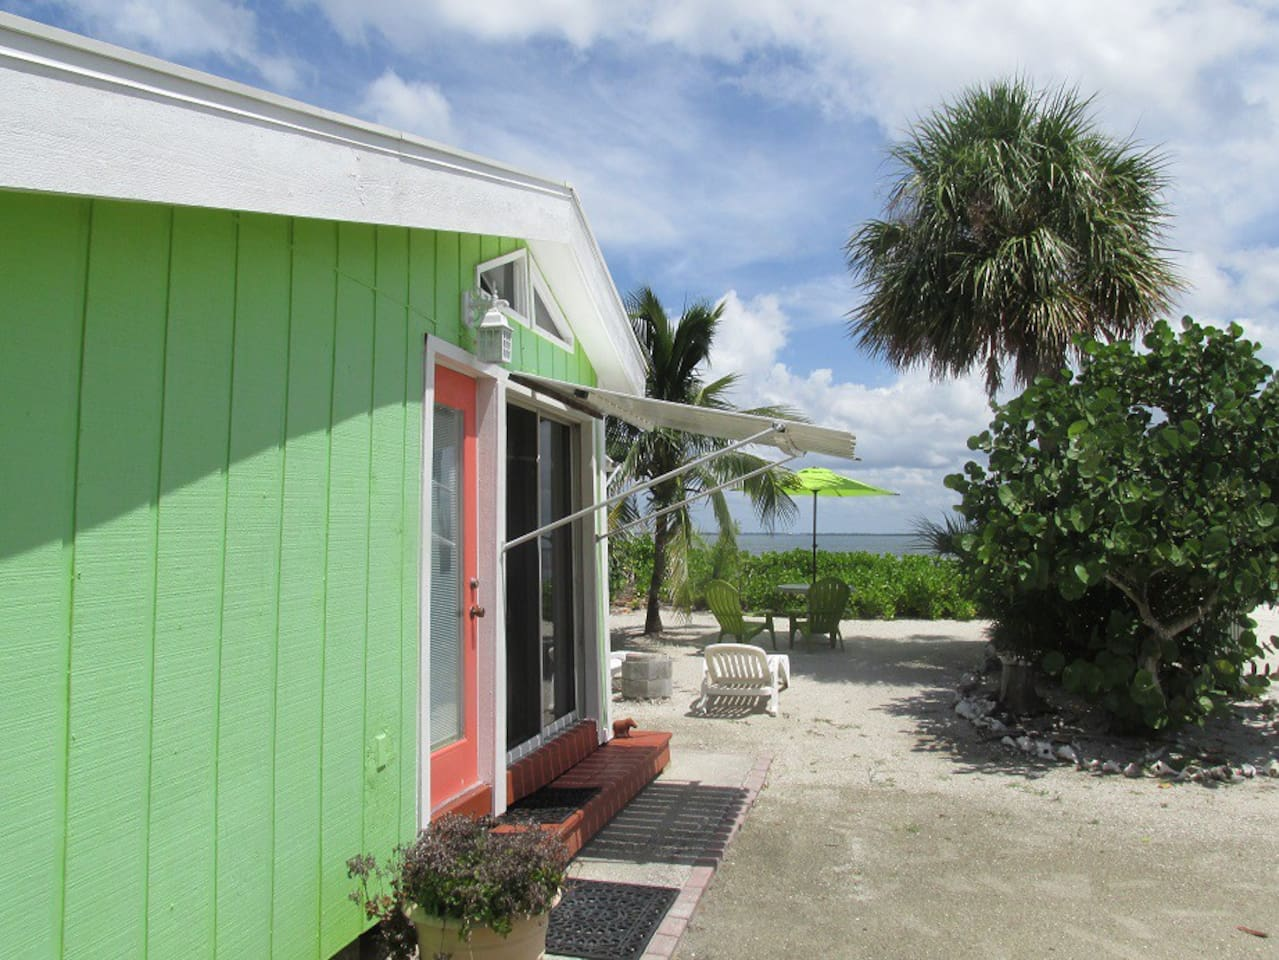 Welcome to Caper Beach Cottage on the beach on beautiful North Captiva Island!